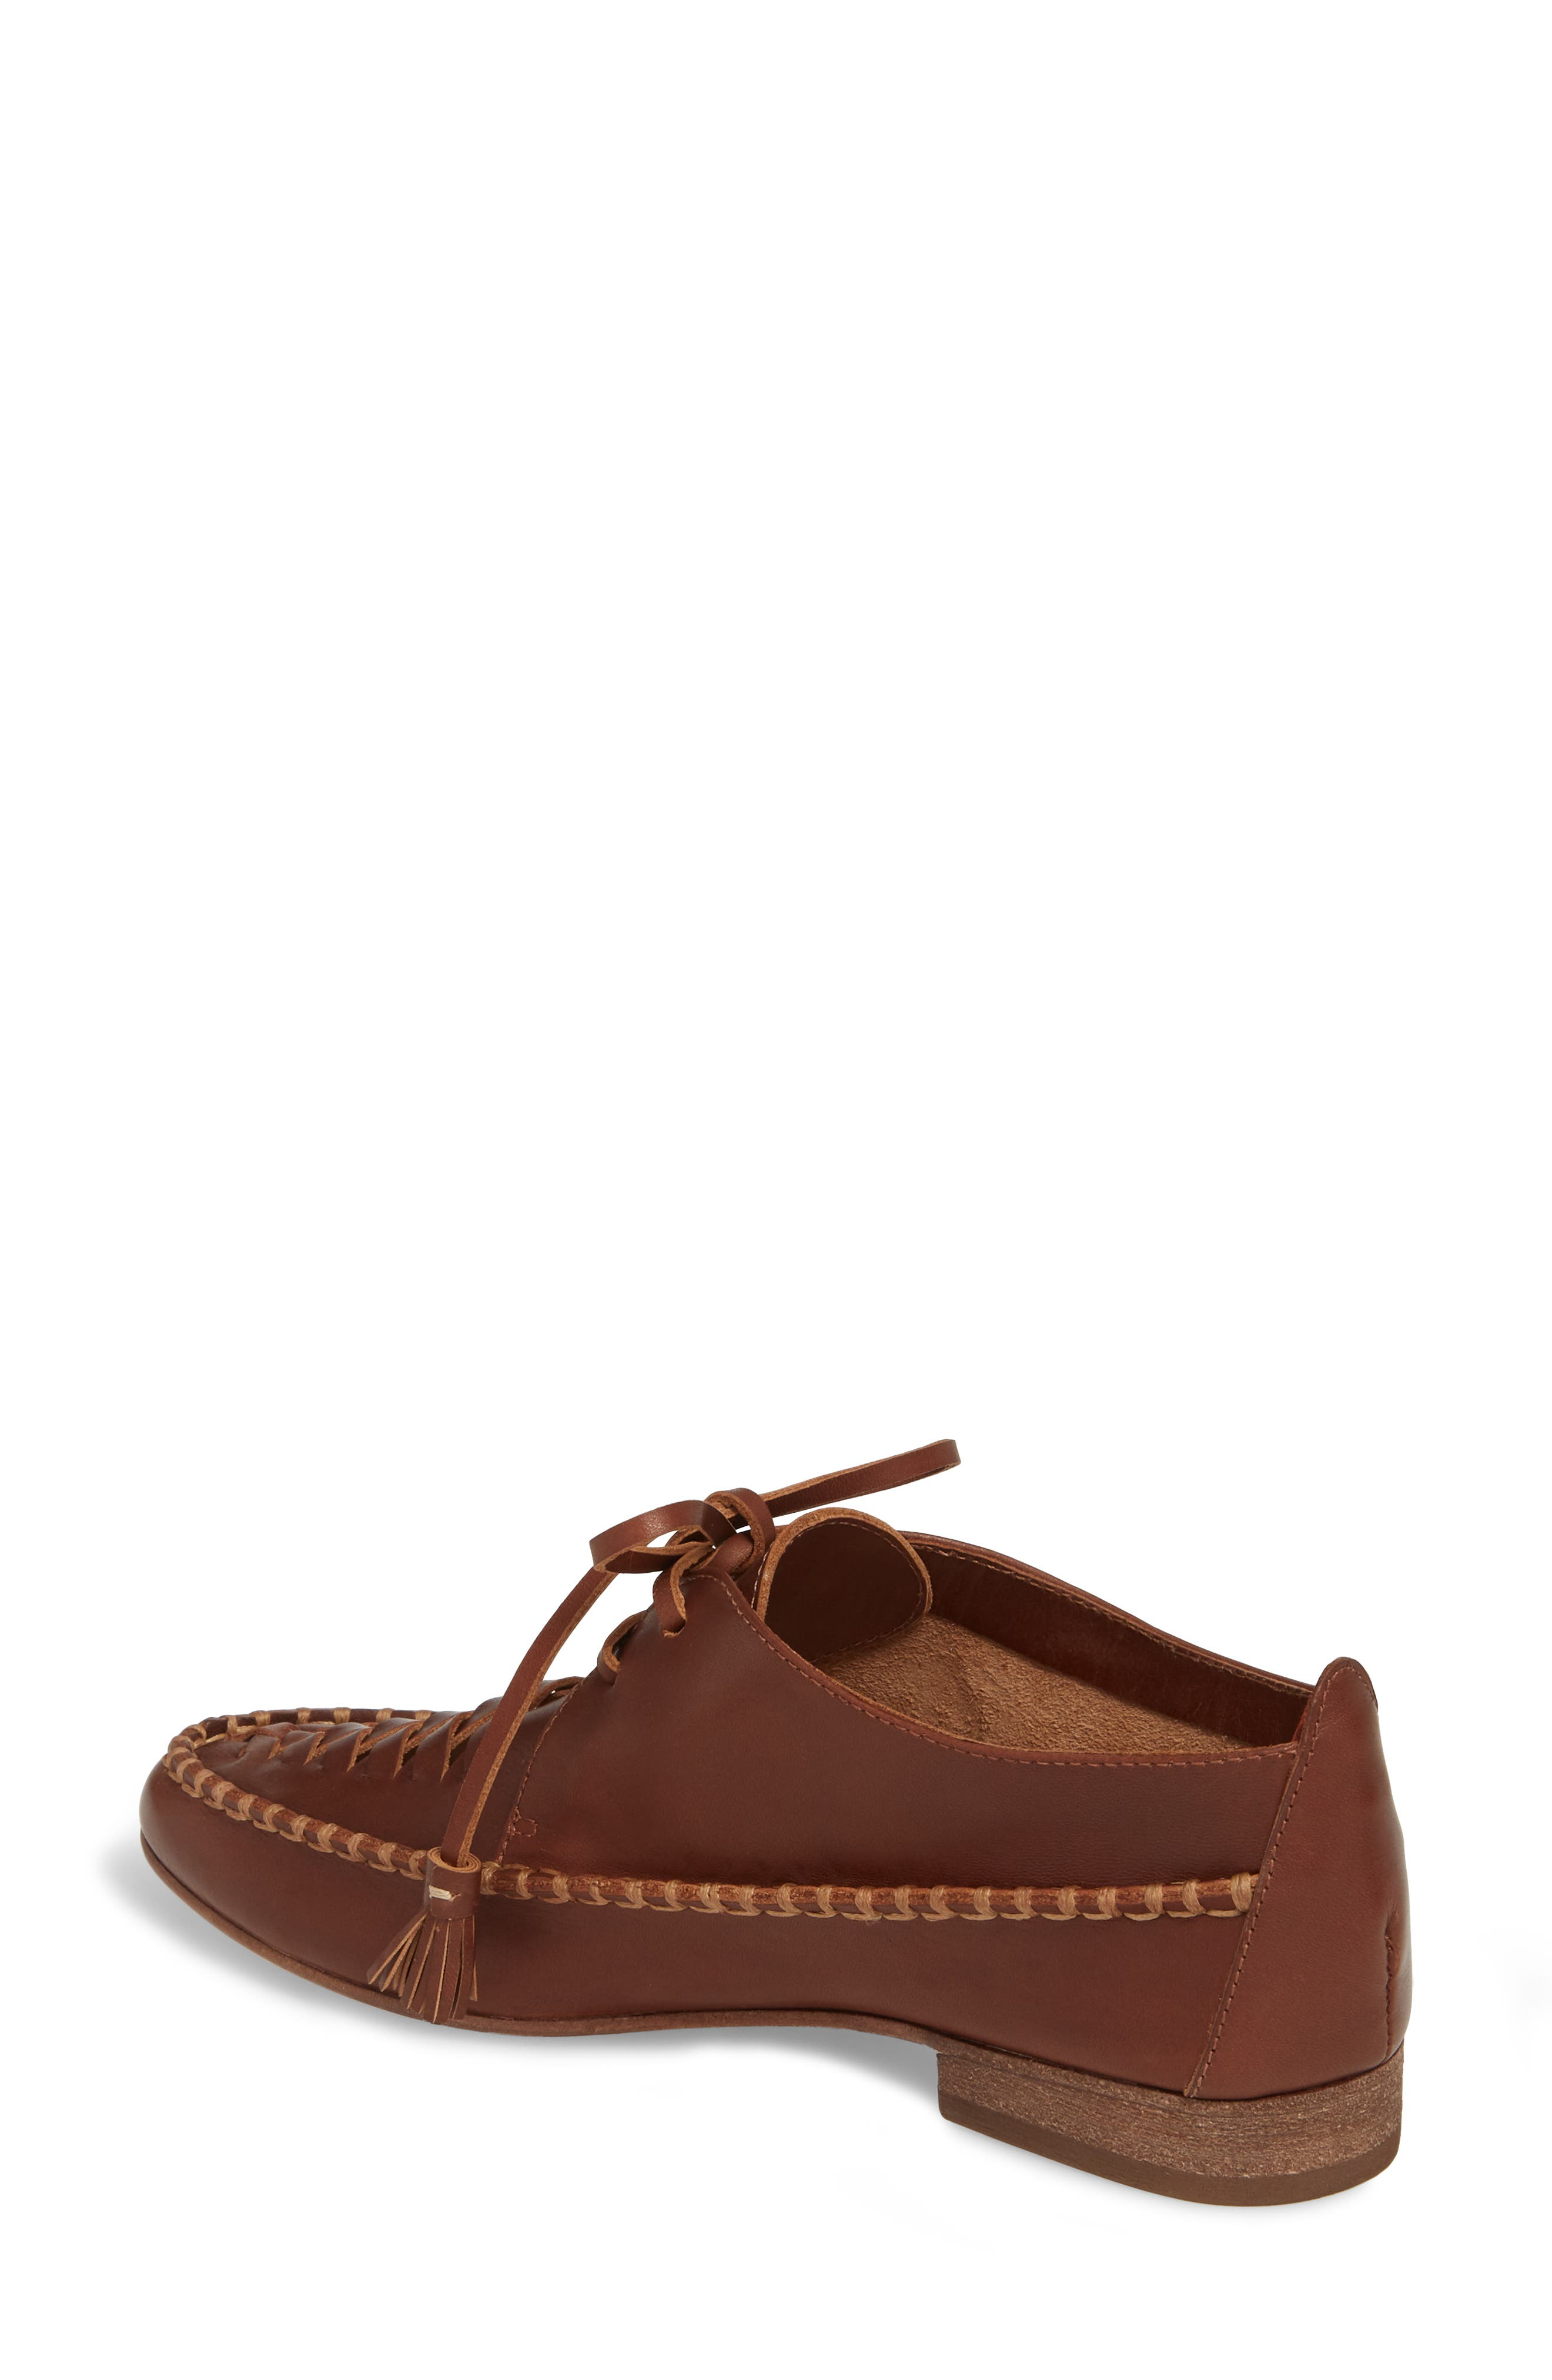 Lake Woven Loafer,                             Alternate thumbnail 2, color,                             CHESTNUT